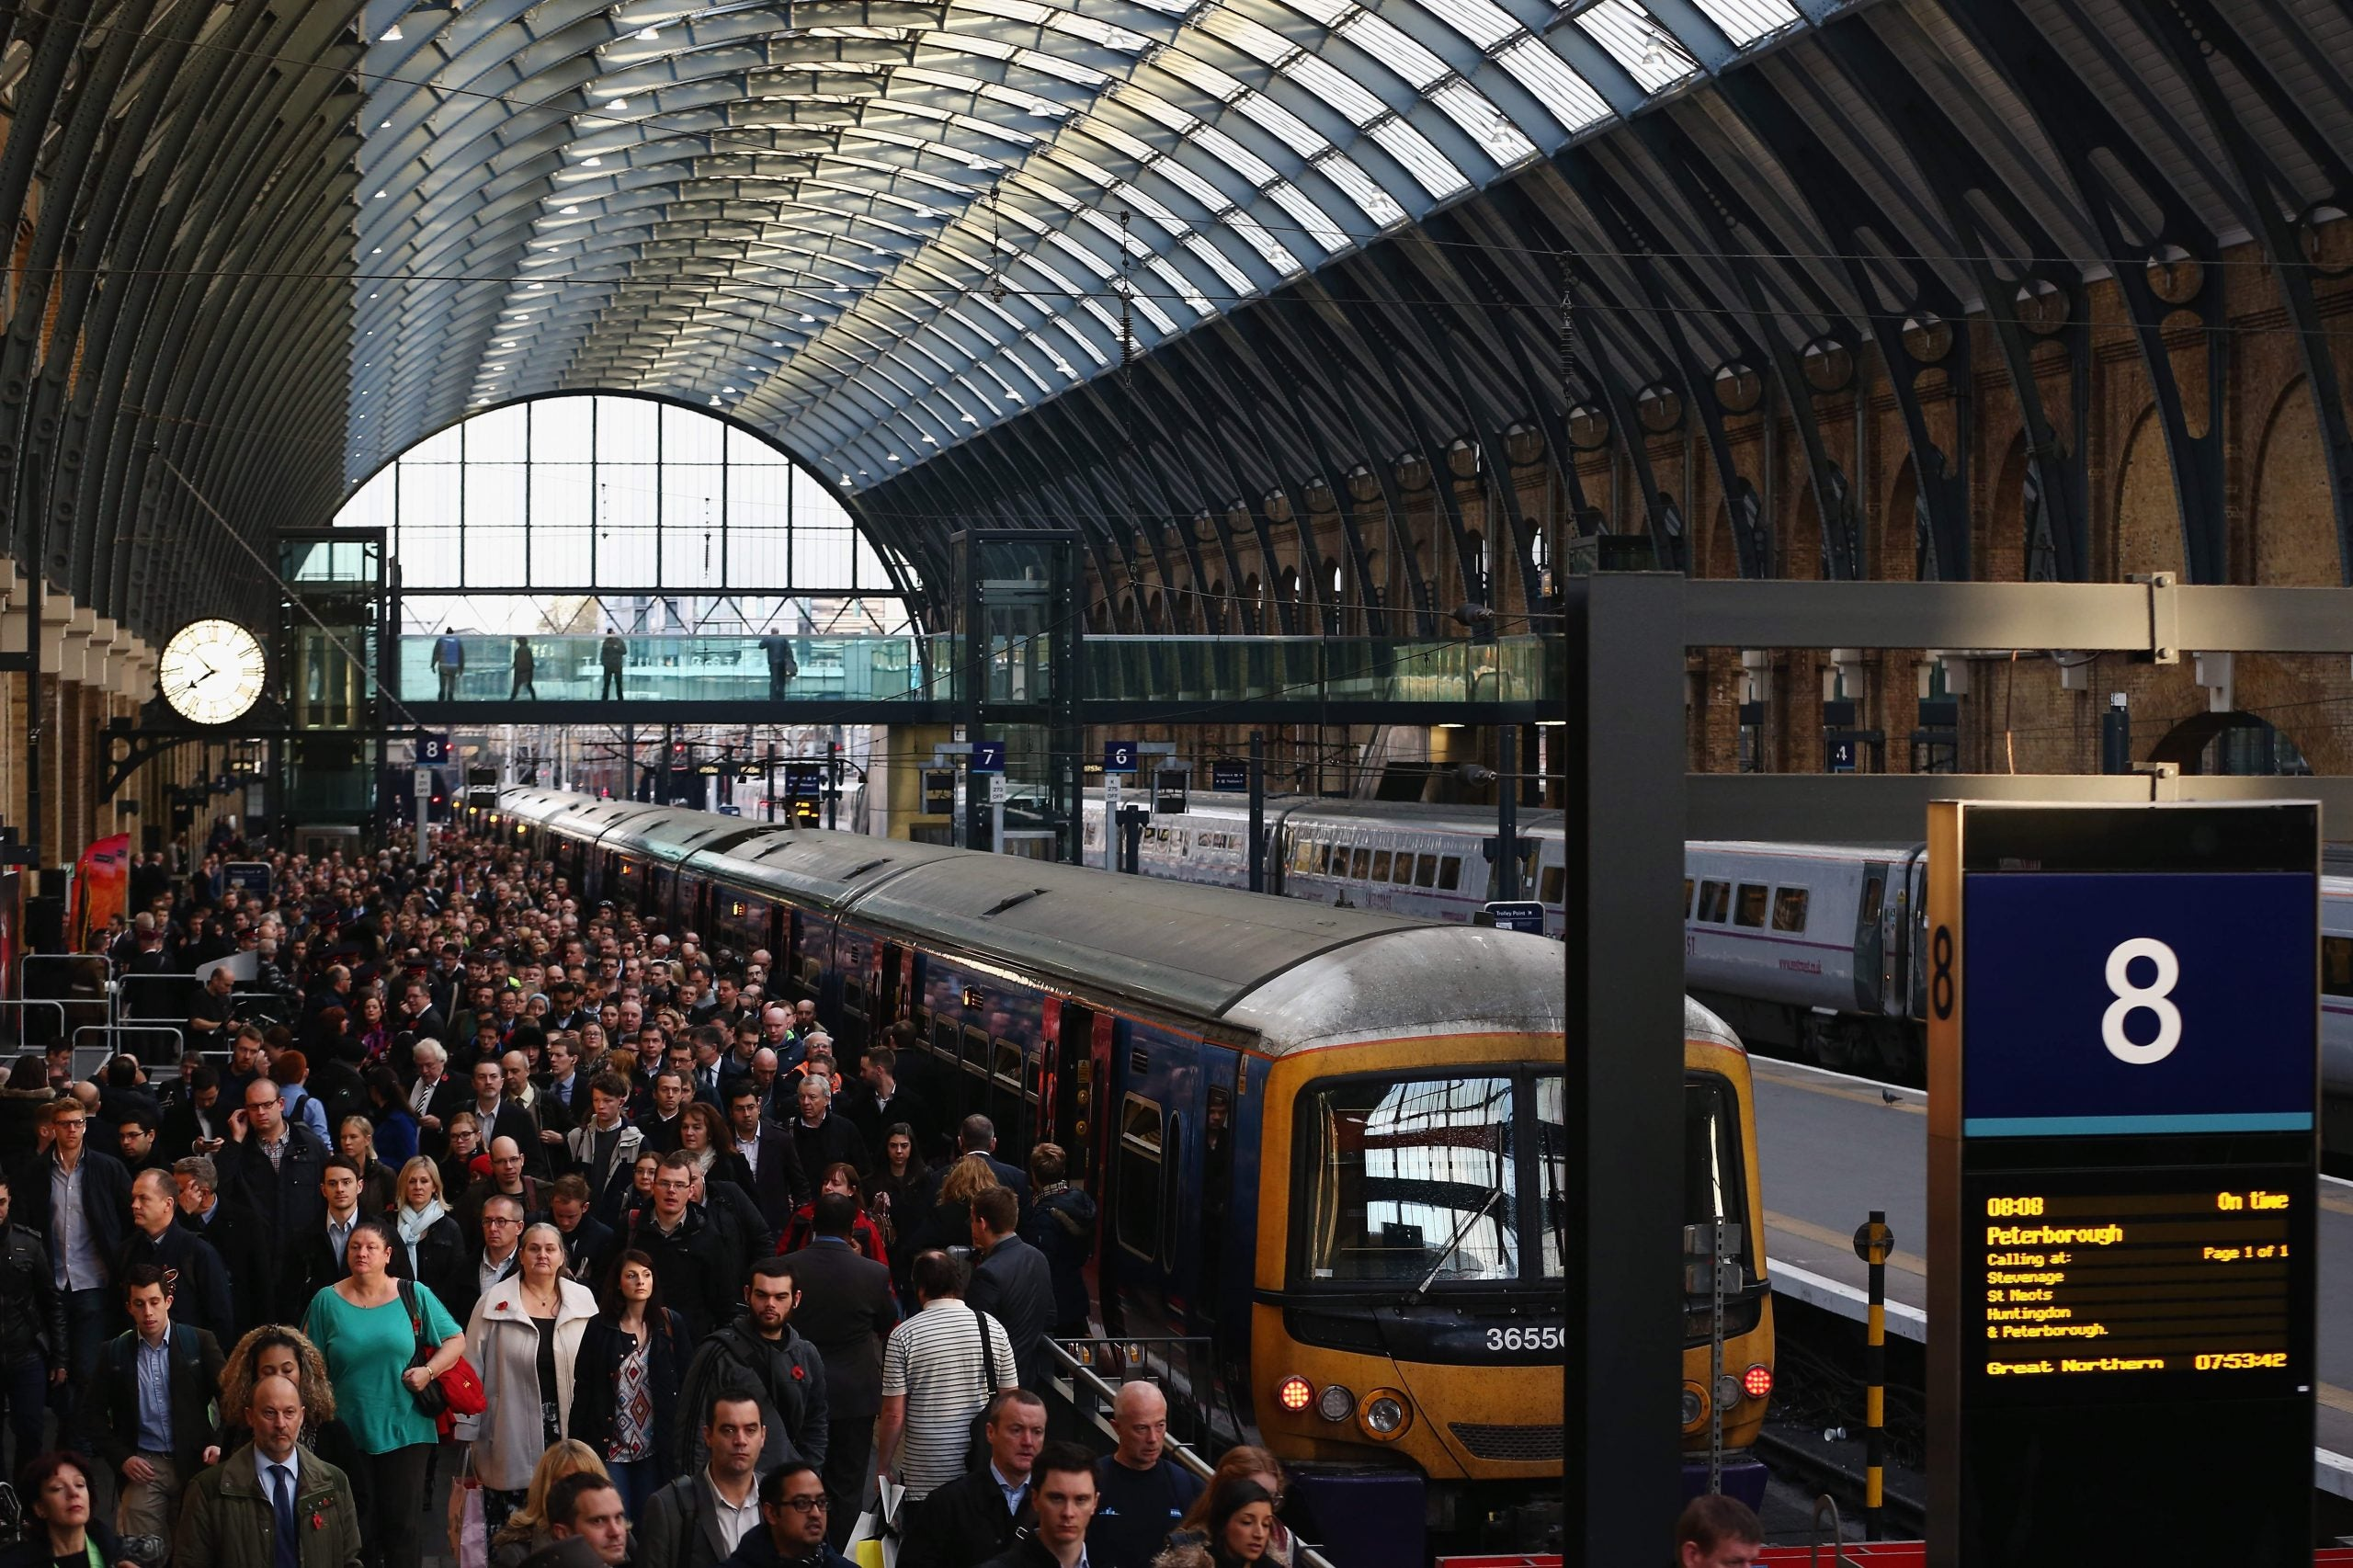 What's Labour's plan for the railways?